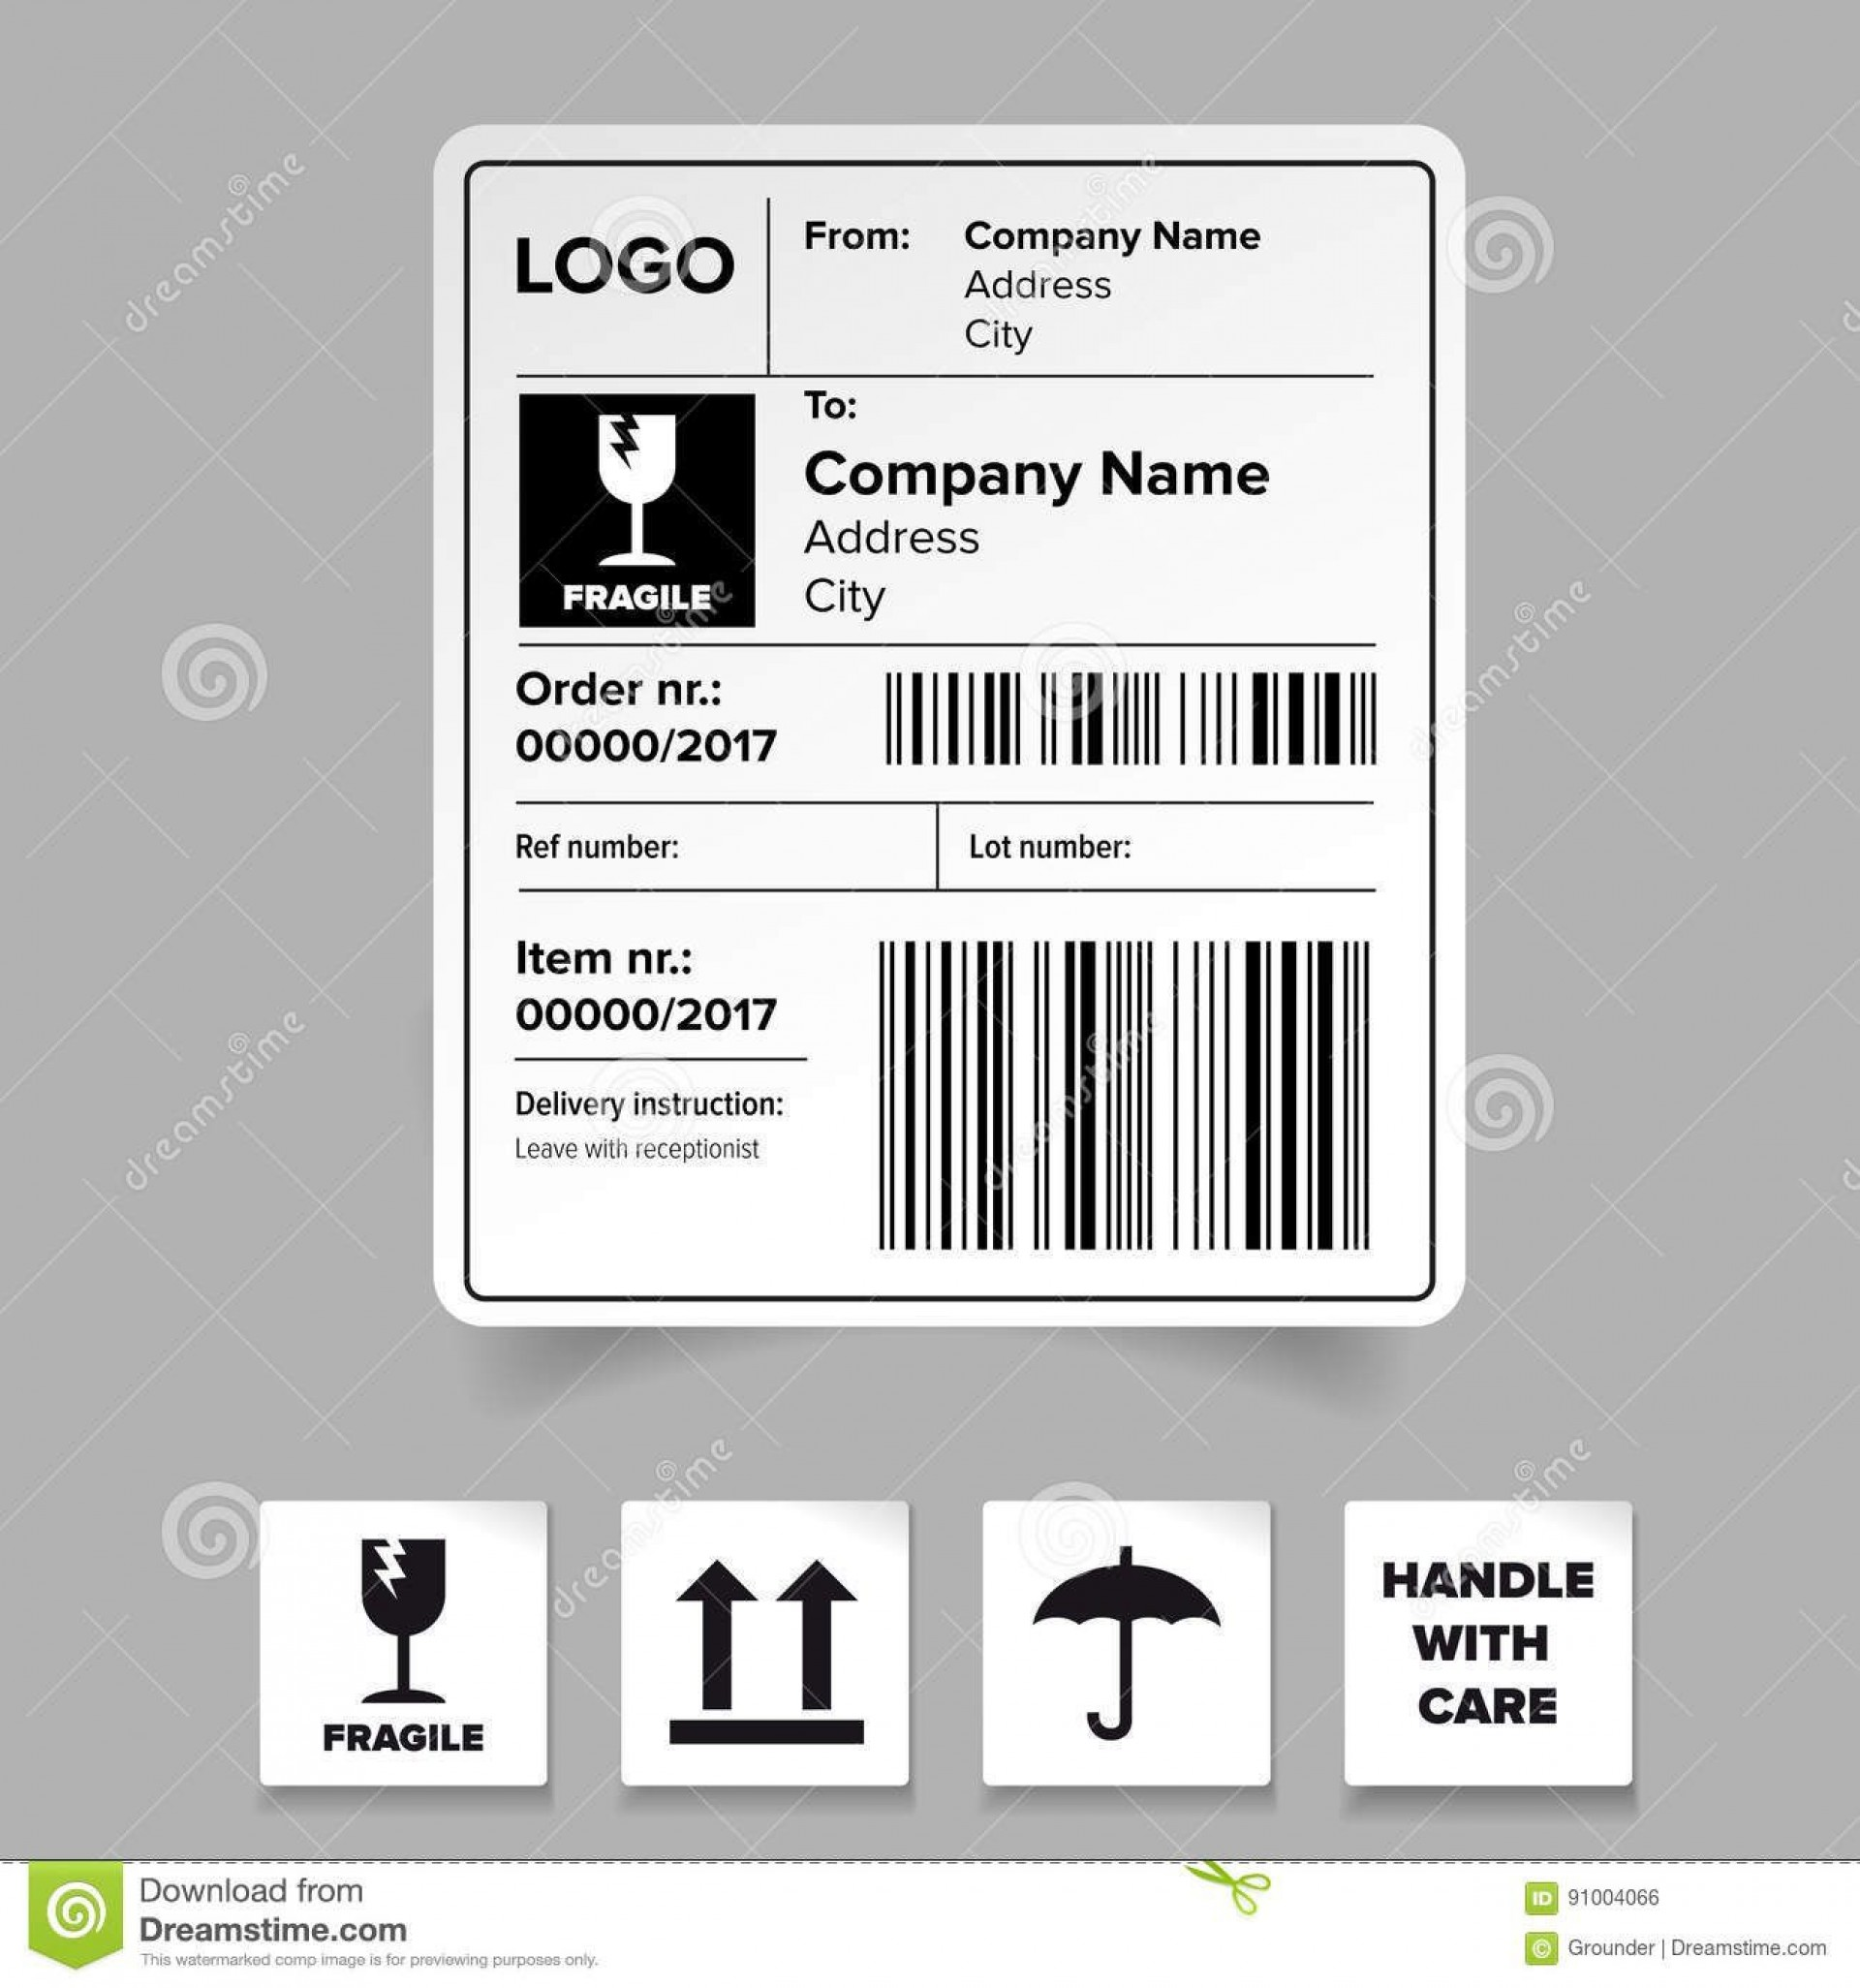 008 Remarkable Free Shipping Label Template Idea  Format Word For Mac1920